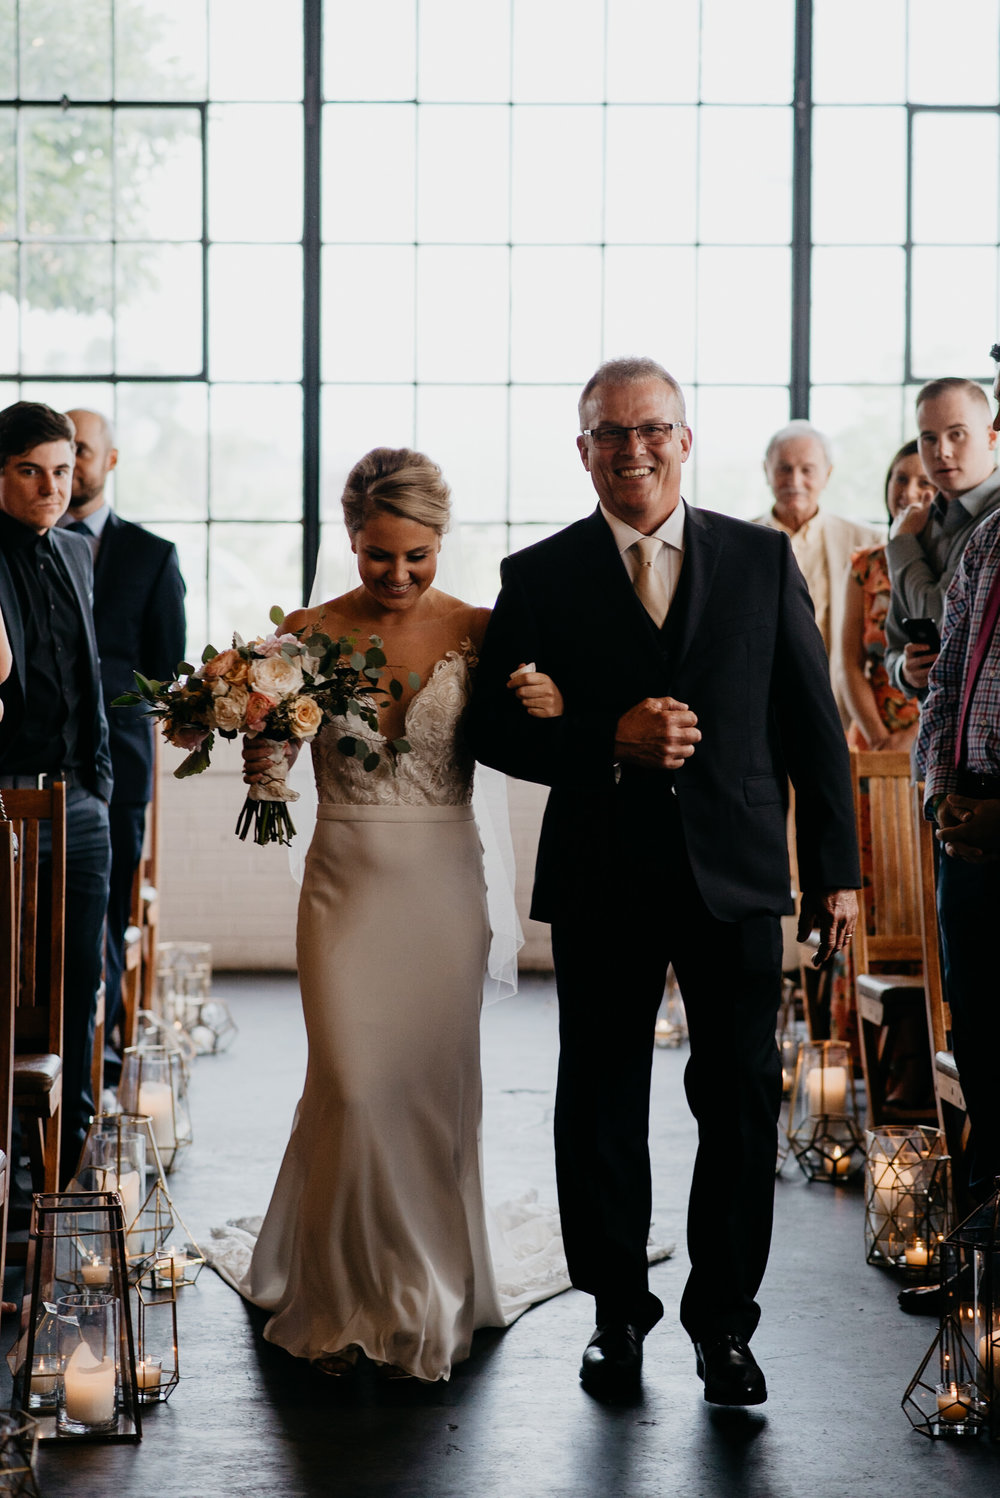 Bride and dad walking down the isle at Moss Denver wedding. Colorado wedding photographer.